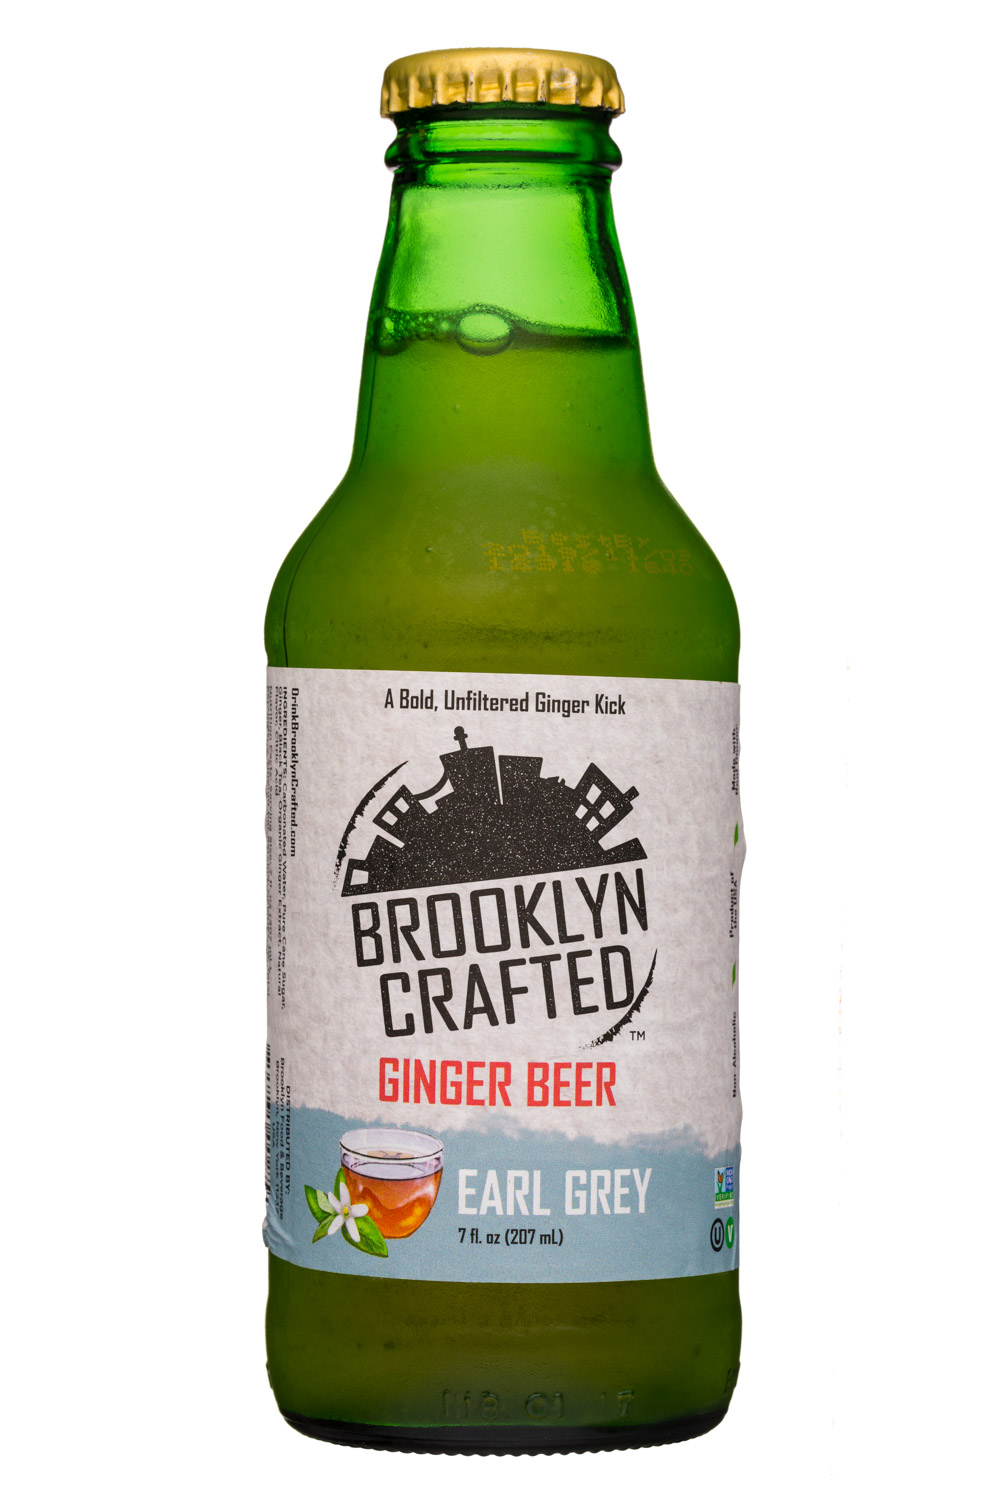 Brooklyn Crafted: BrooklynCrafted-7oz-GingerBeer-EarlGrey-Front